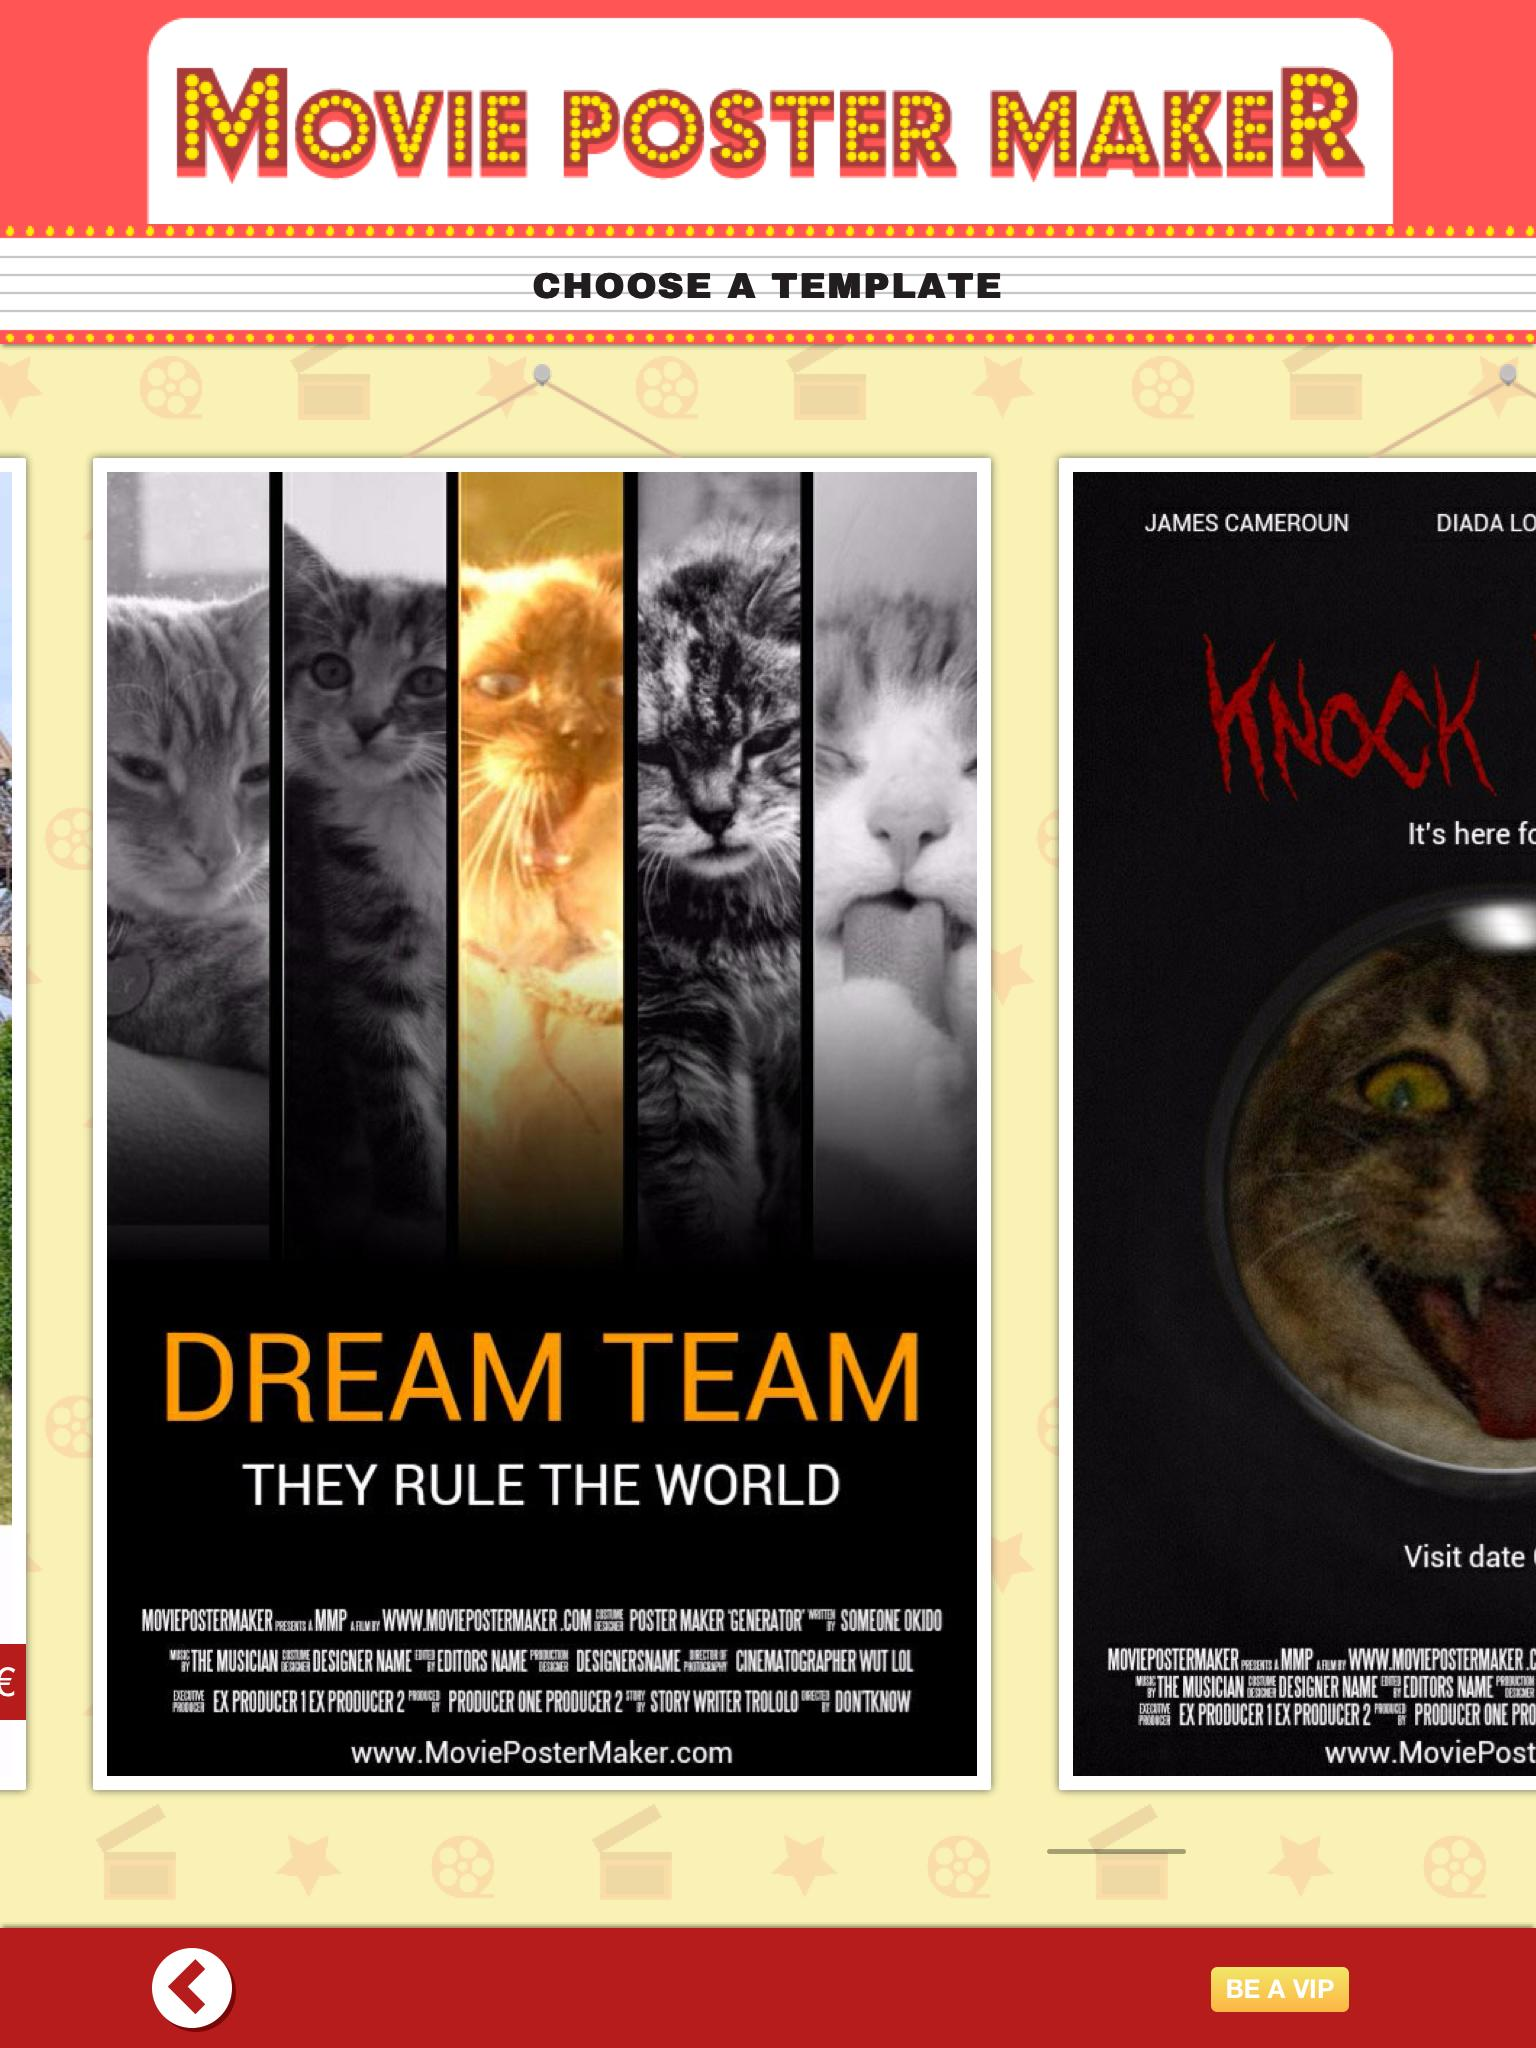 Movie Poster Maker & Template for Android - APK Download